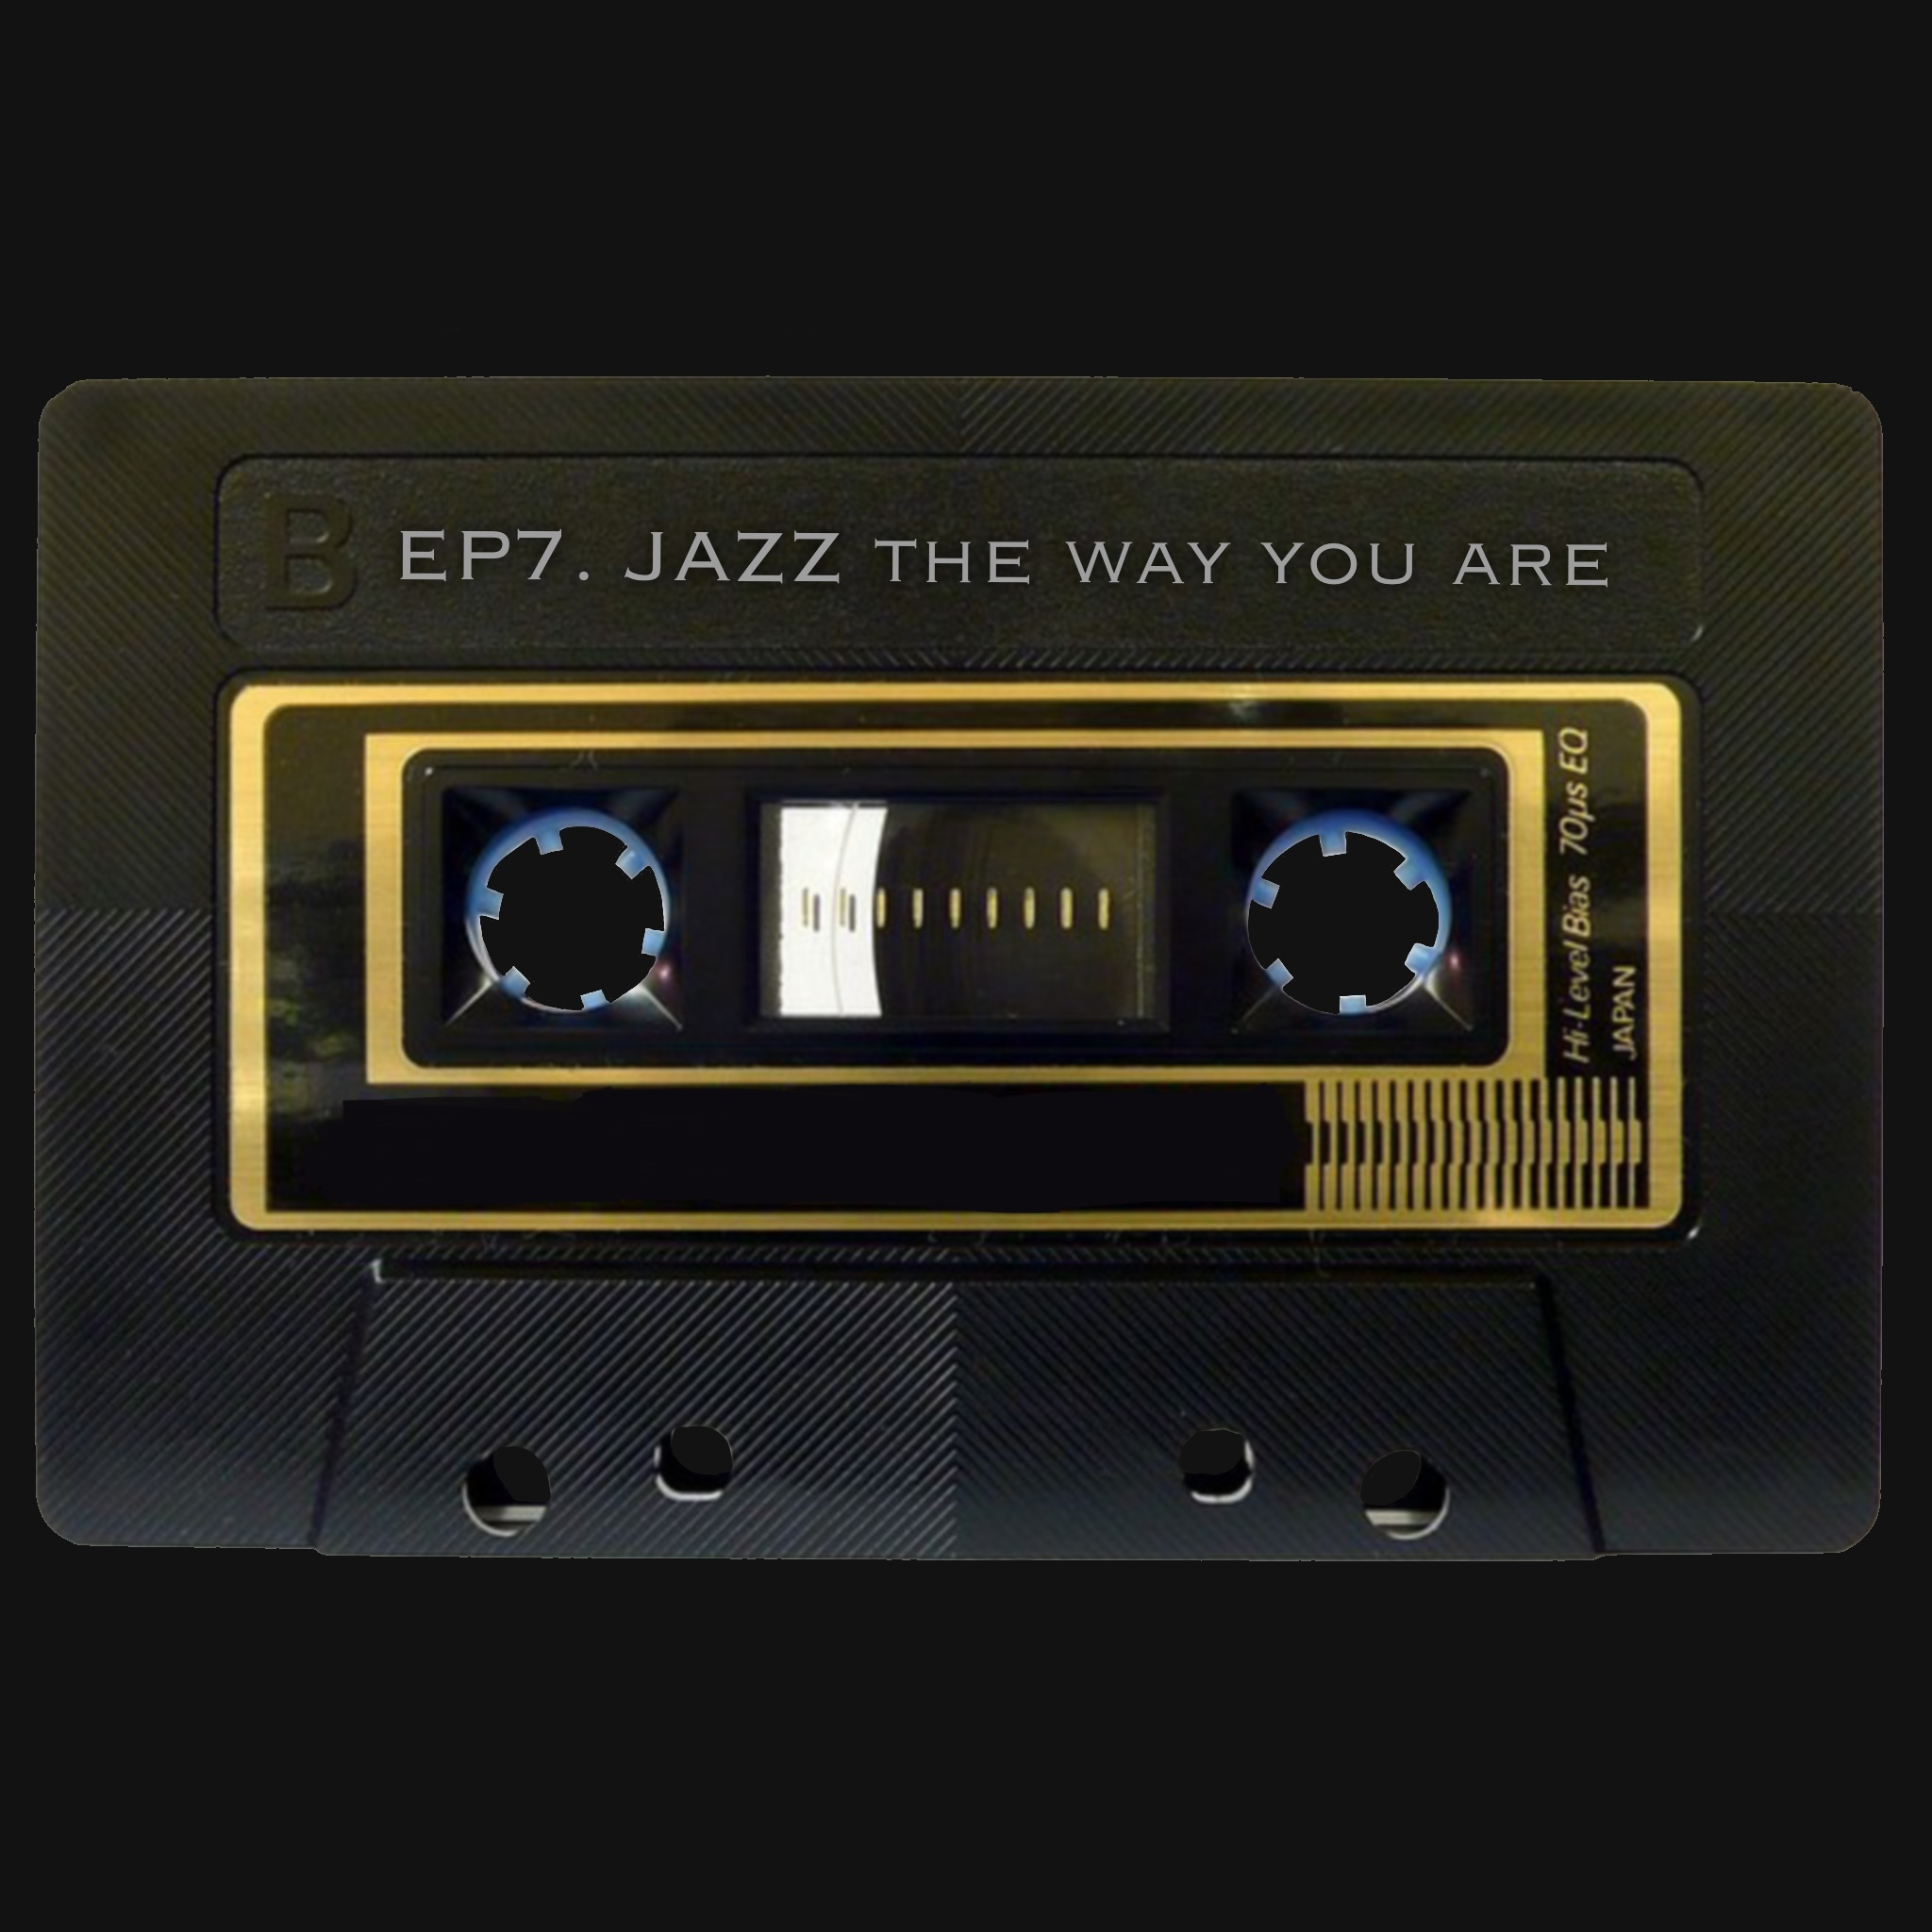 [EP7] 今天絕對是爵士Jazz the way you are